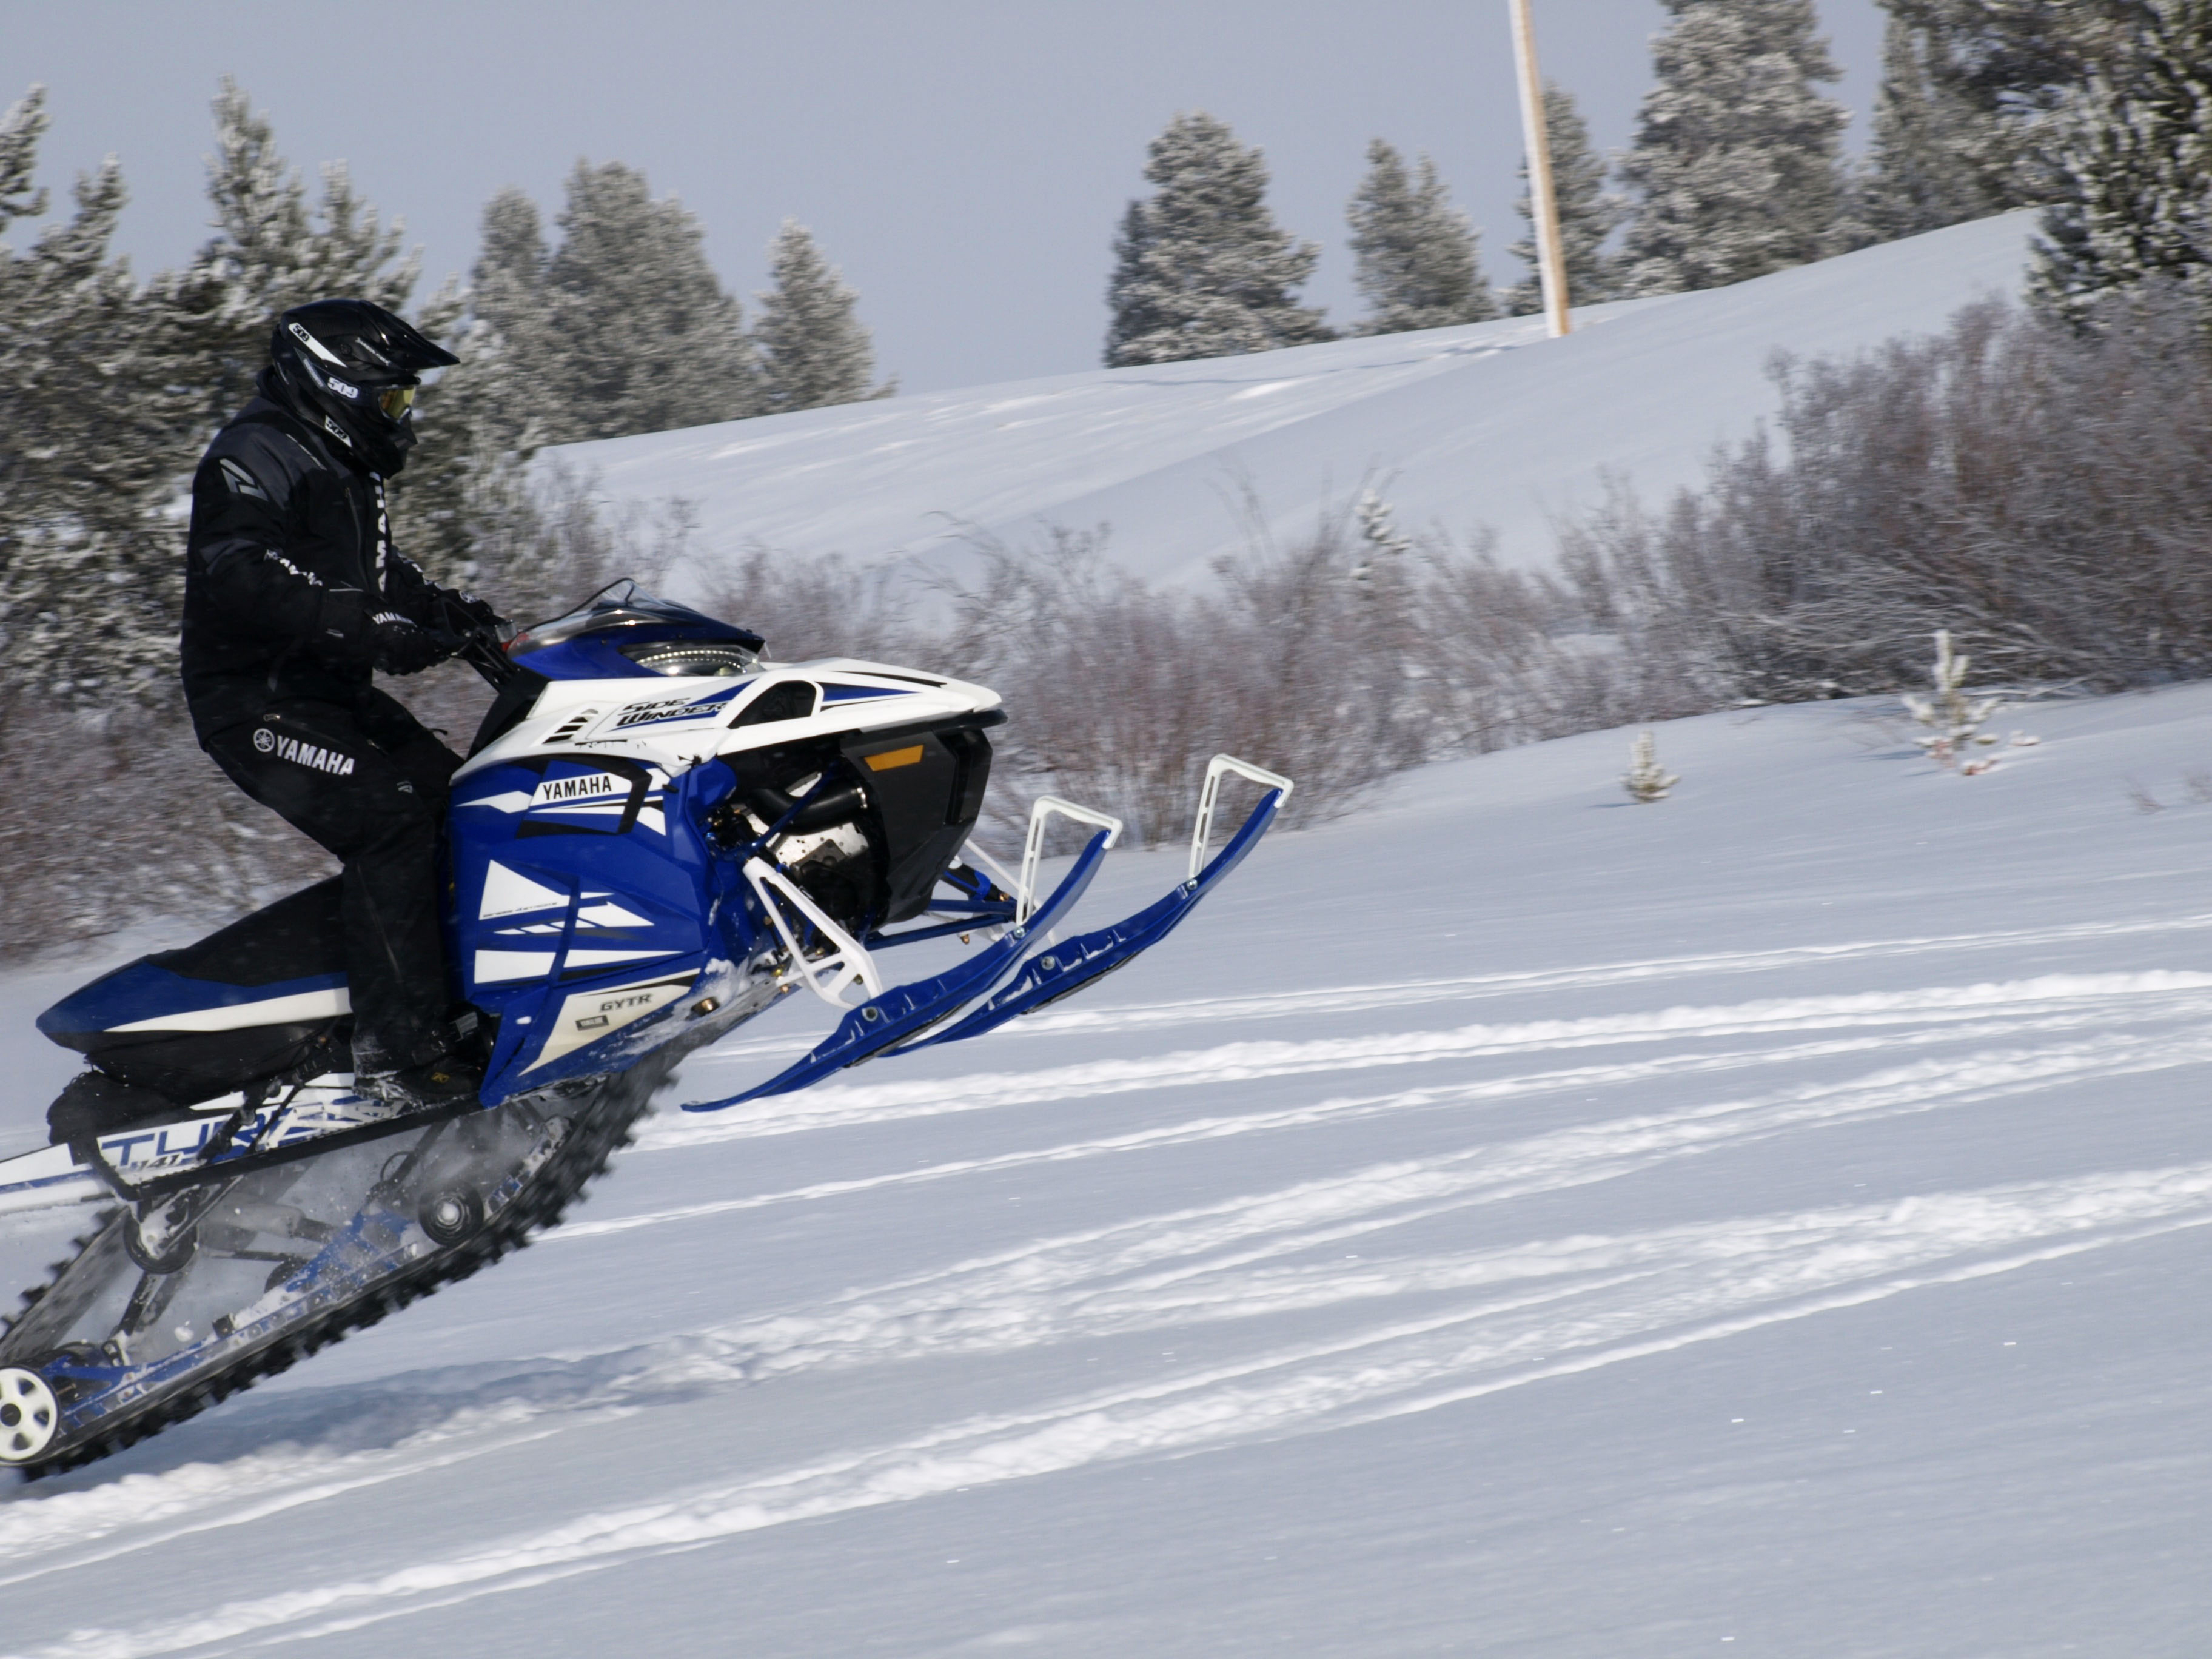 2018: The Year of Big Power - Snowmobile.com on